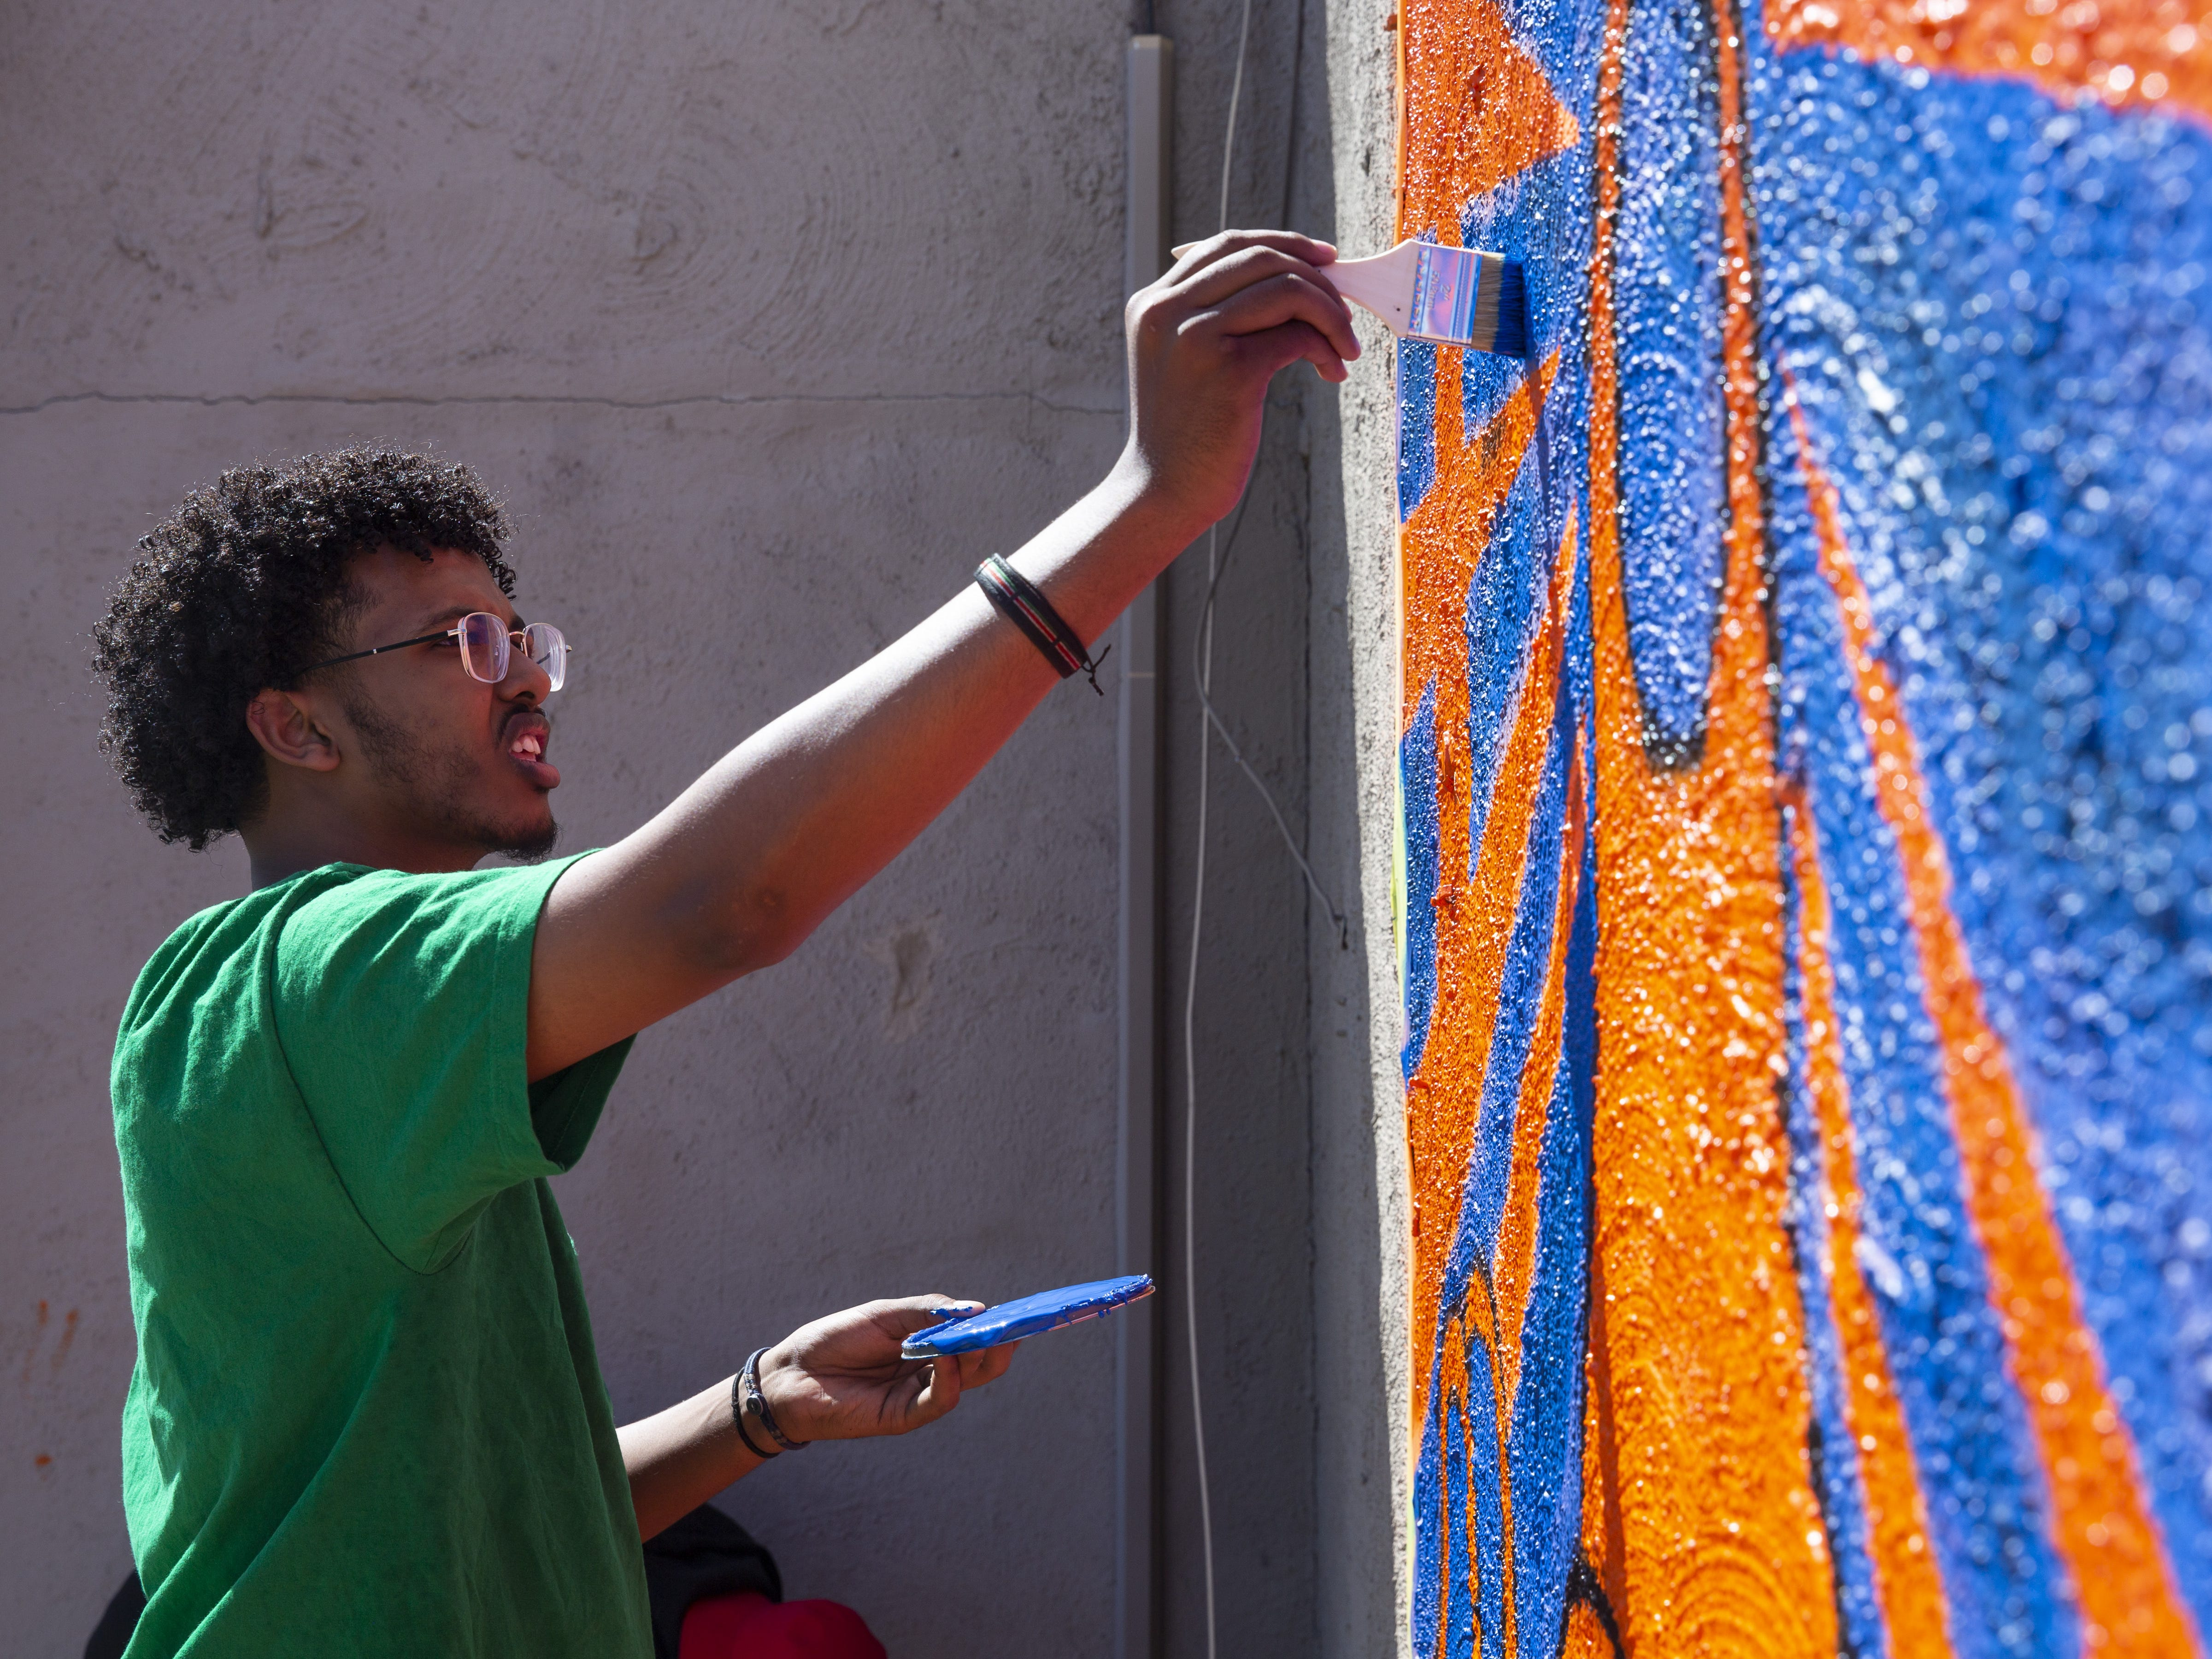 Yaqub Hussein touches up a mural in Phoenix, Ariz. on March 31, 2019.